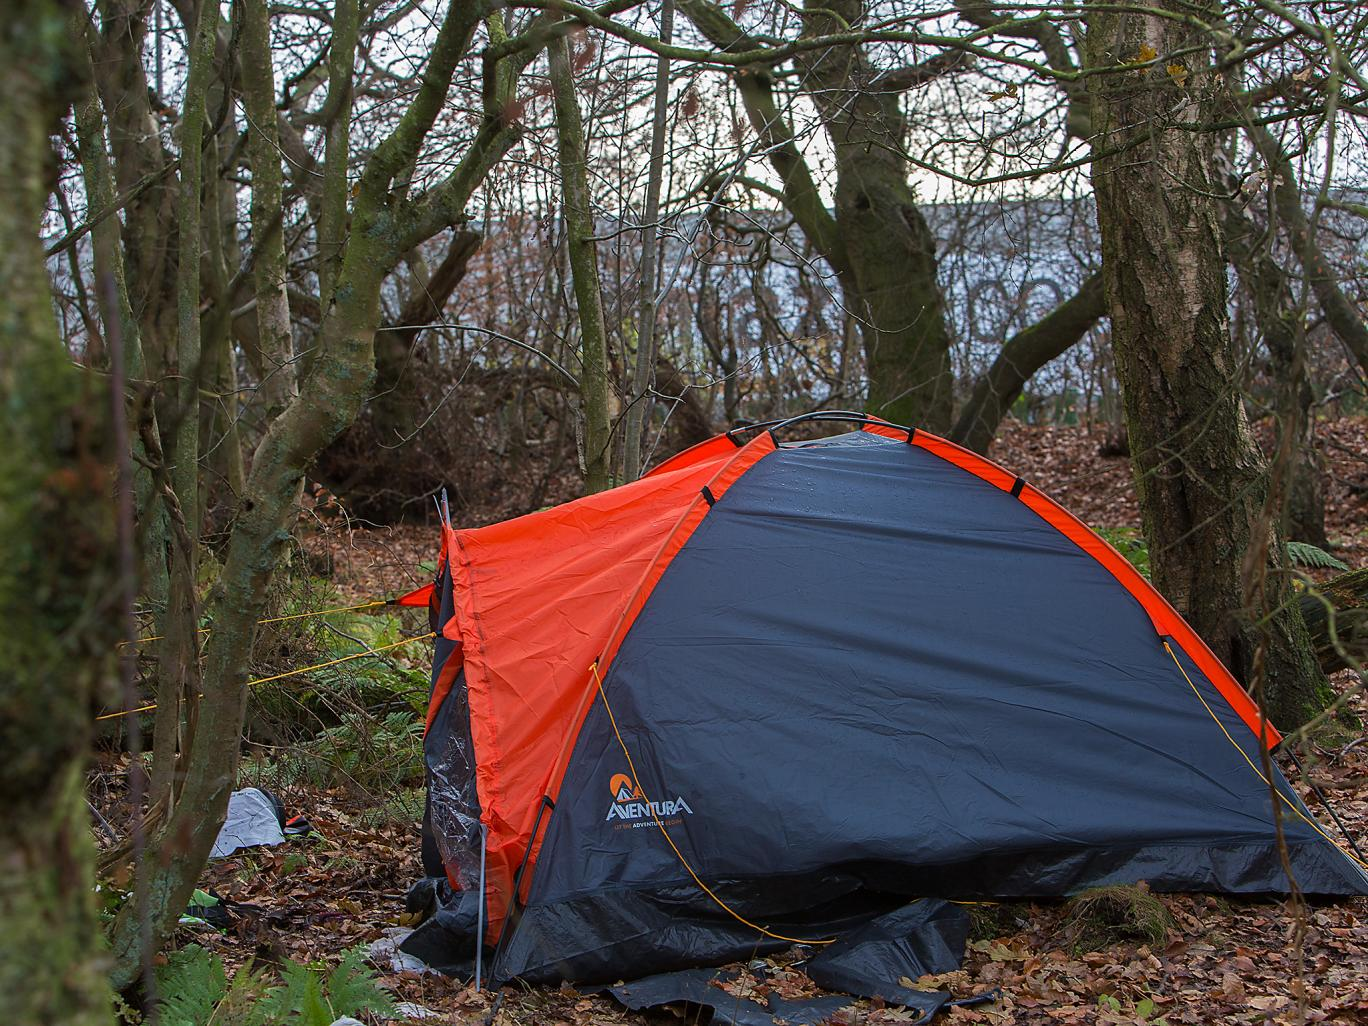 Workers said they were sleeping in woods near the warehouse to save money on transport. & Amazon workers sleeping in tents: on the logic of serfdom u2013 The ...